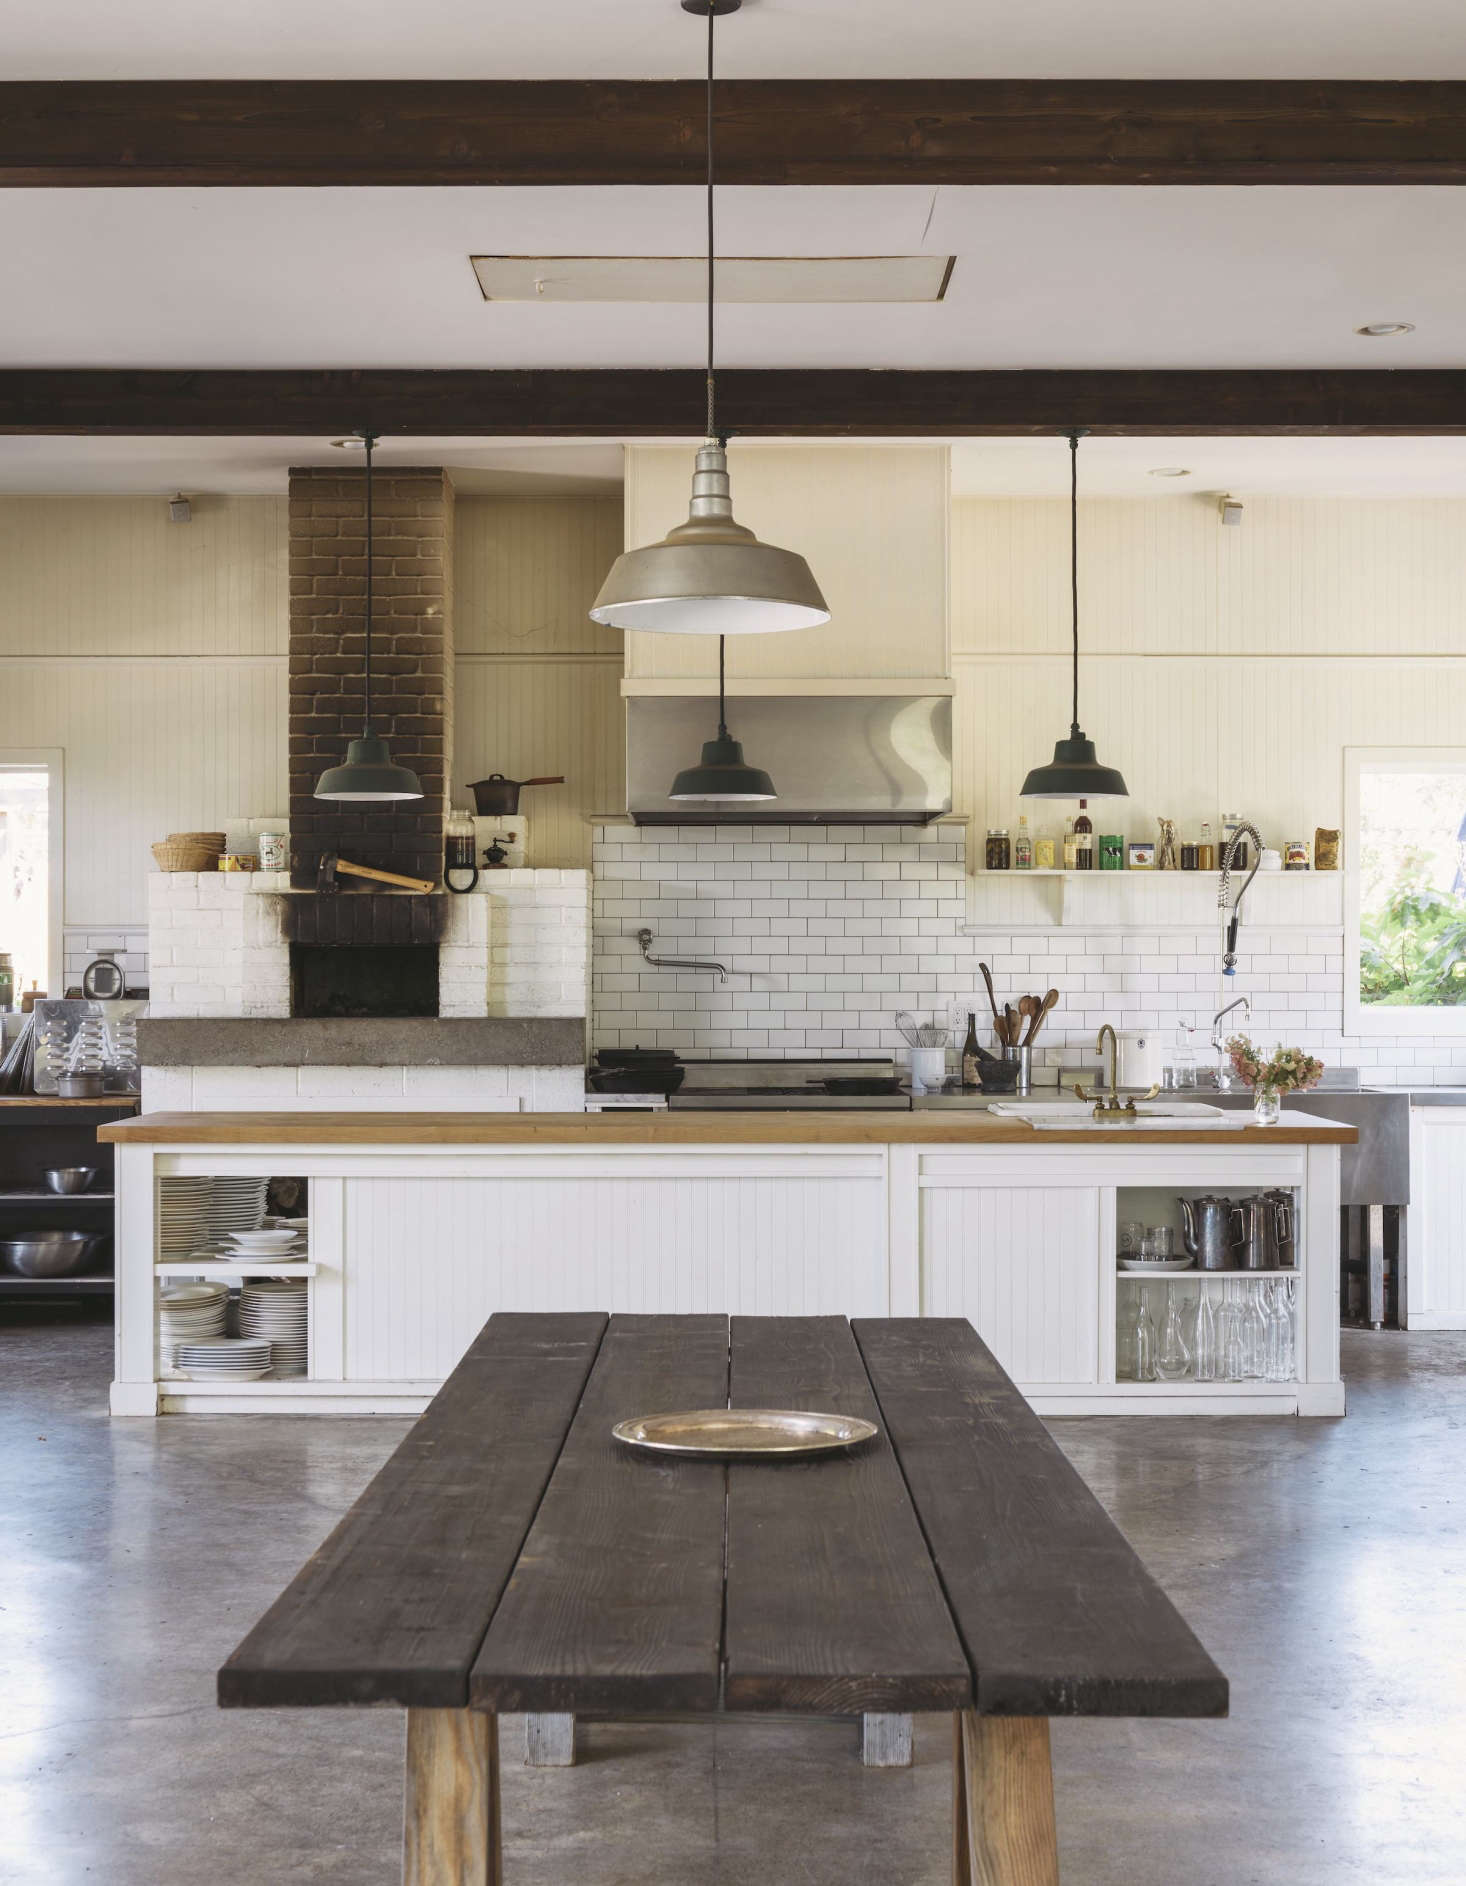 Practicality Reigns In The Kitchen, With A Woodstove, A Subway Tile  Backsplash, And